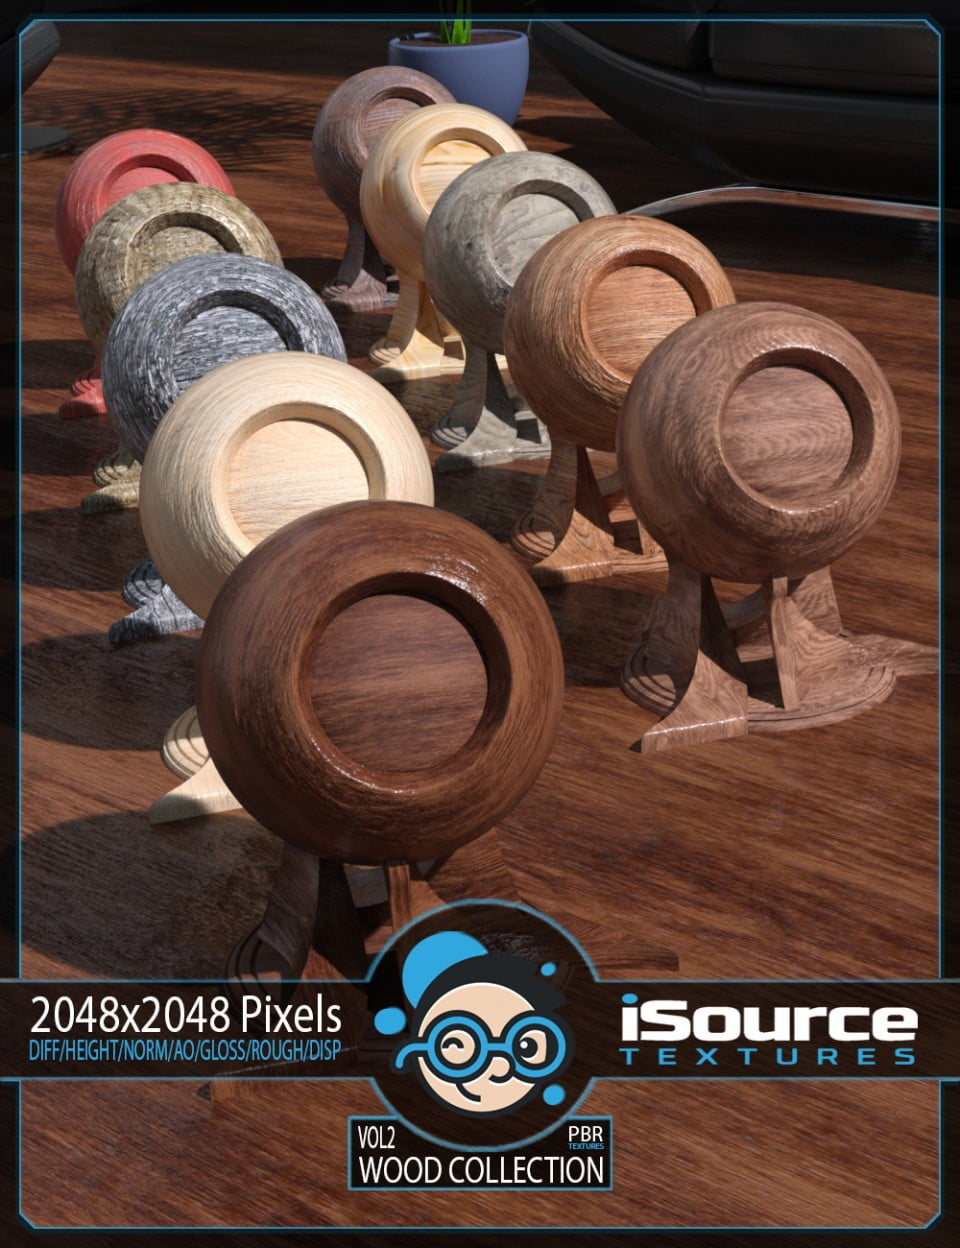 Wood Collection Merchant Resource – Vol2 (PBR Textures)